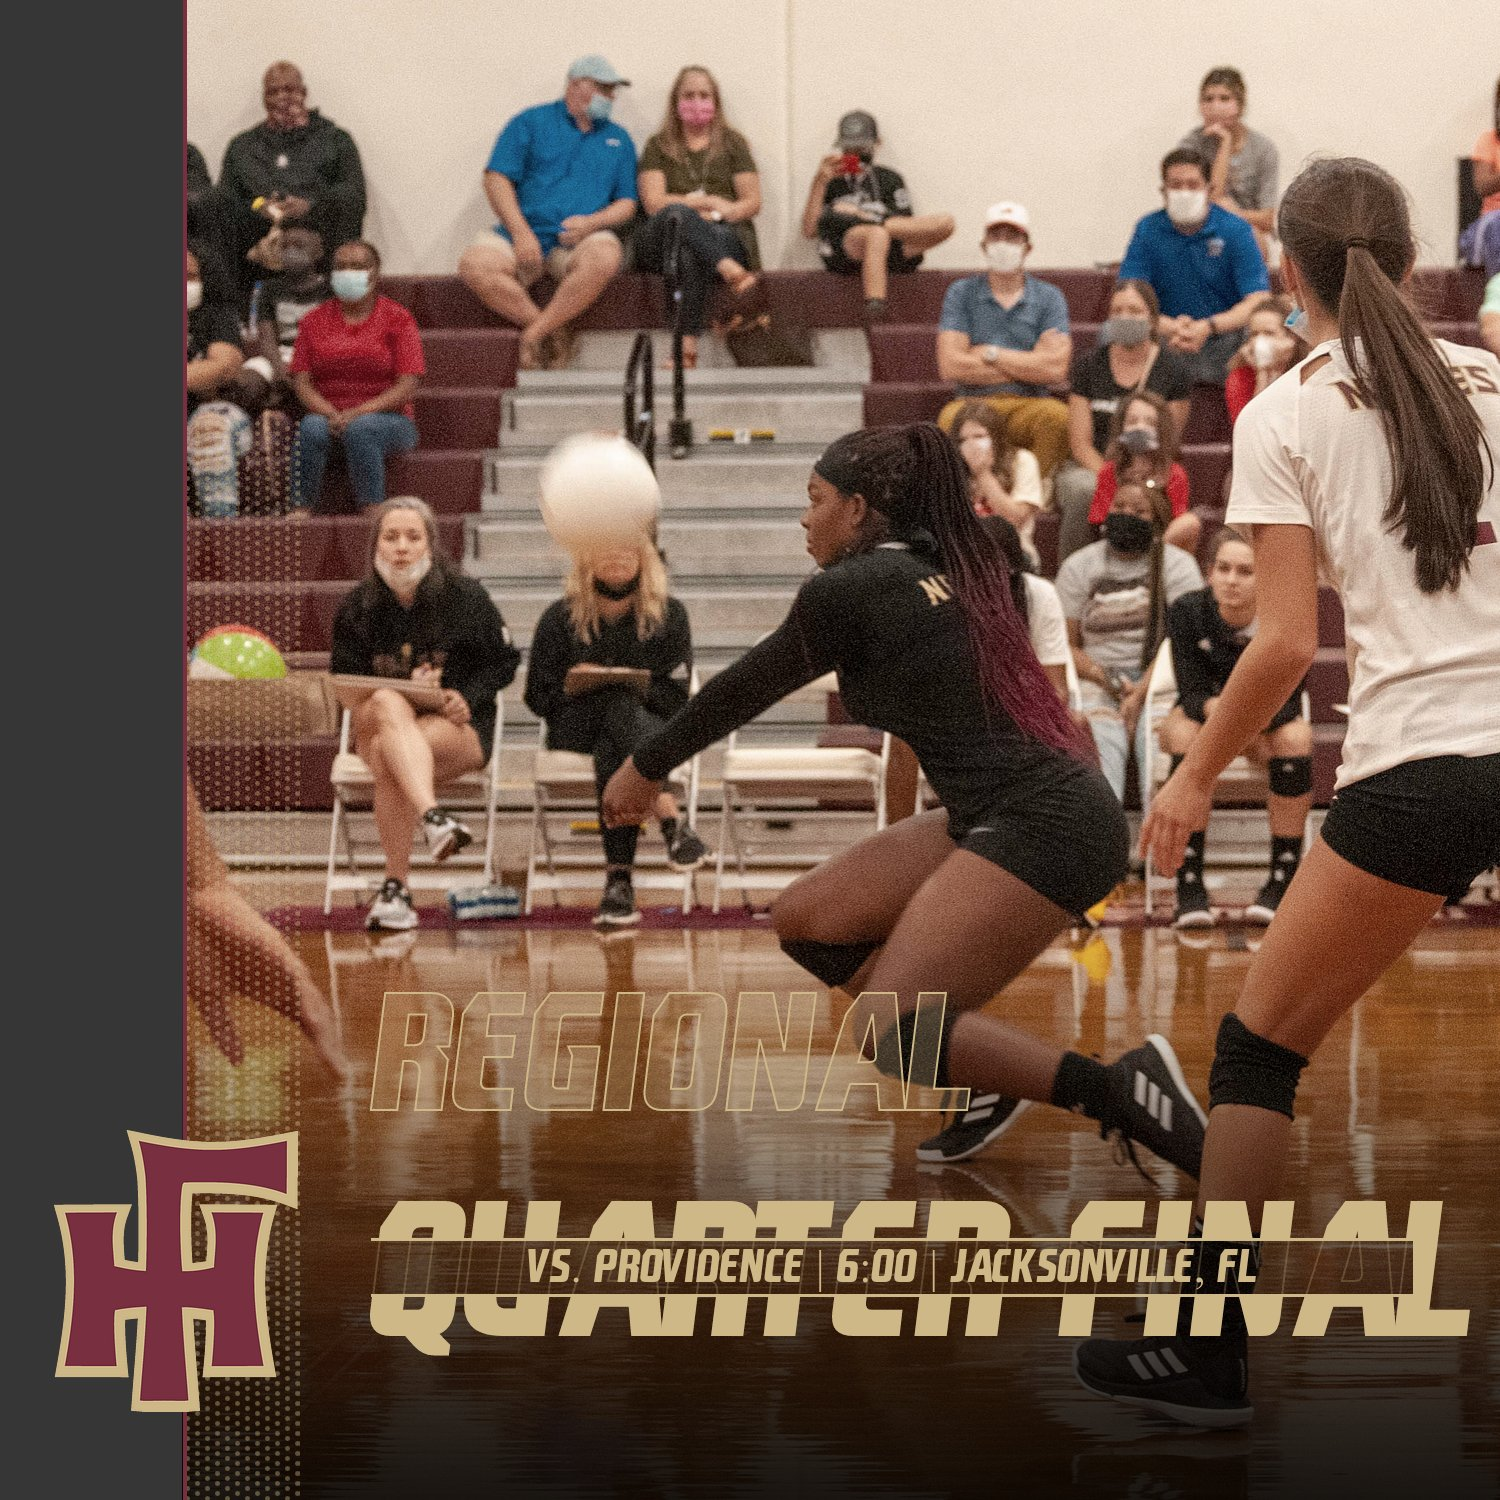 Varsity Volleyball heads to Jacksonville for Regional Quarter Final